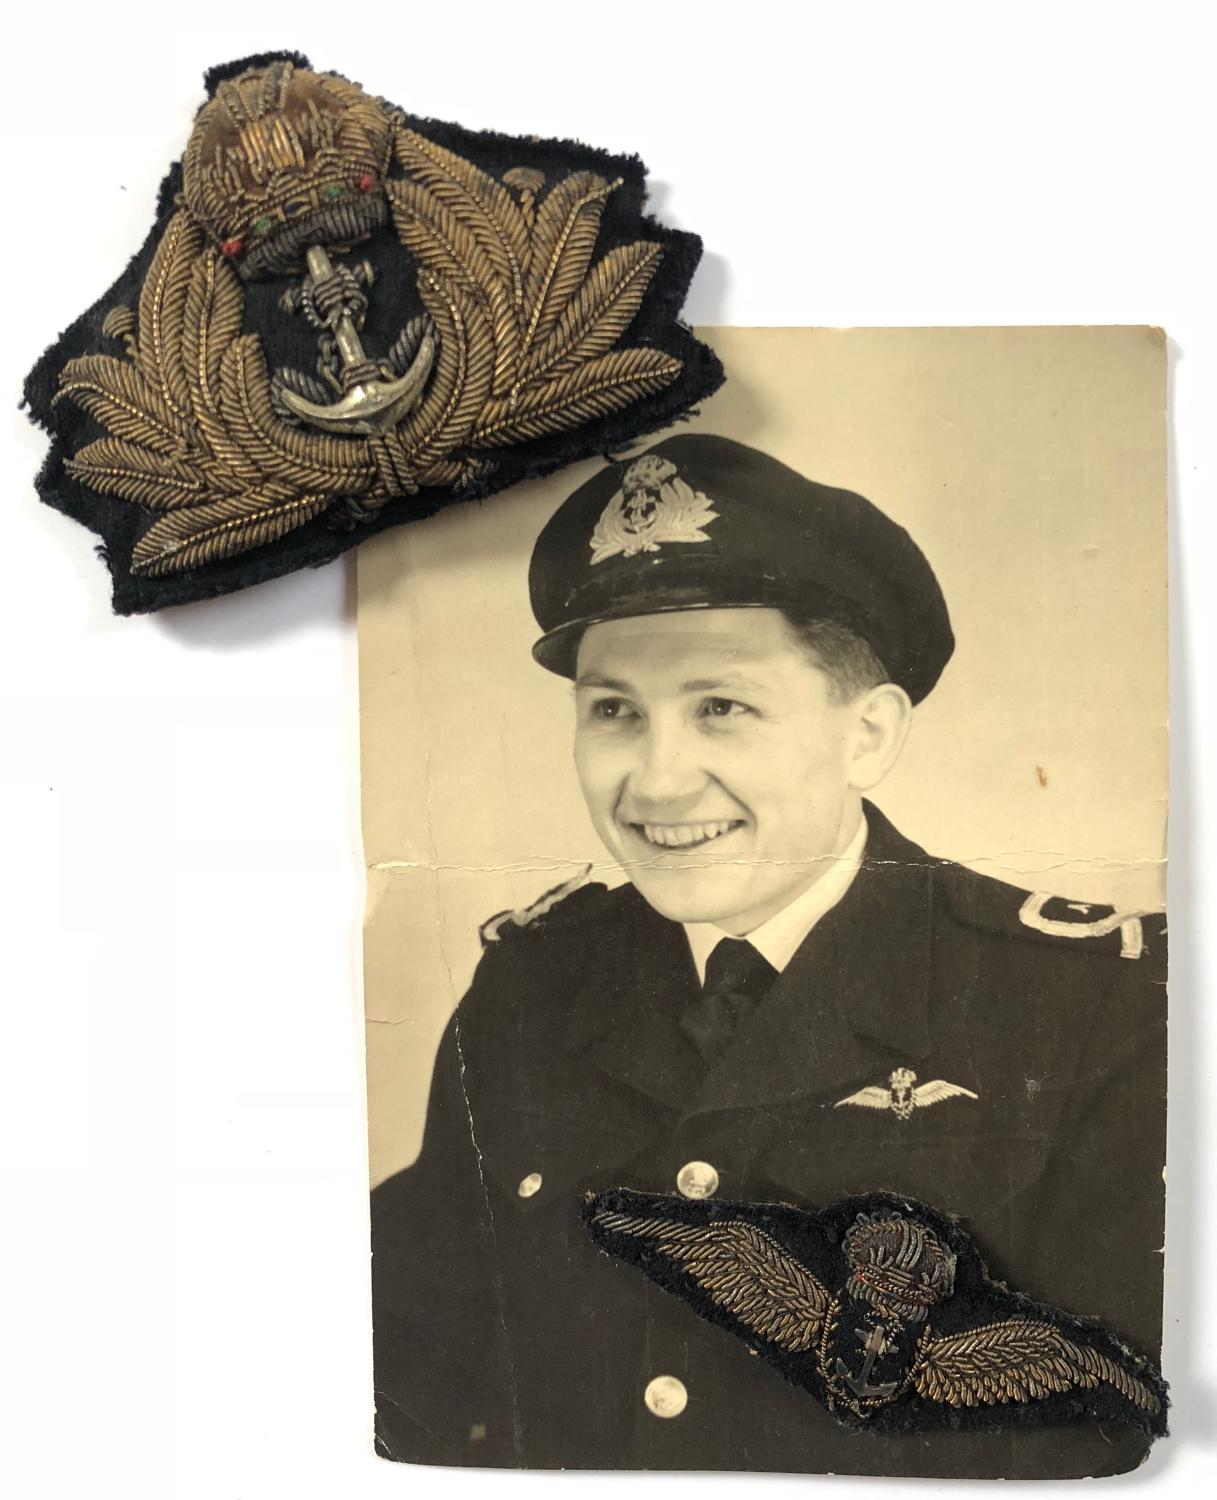 WW2 Fleet Air Arm Pilots Wings Photograph & Cap Badge.